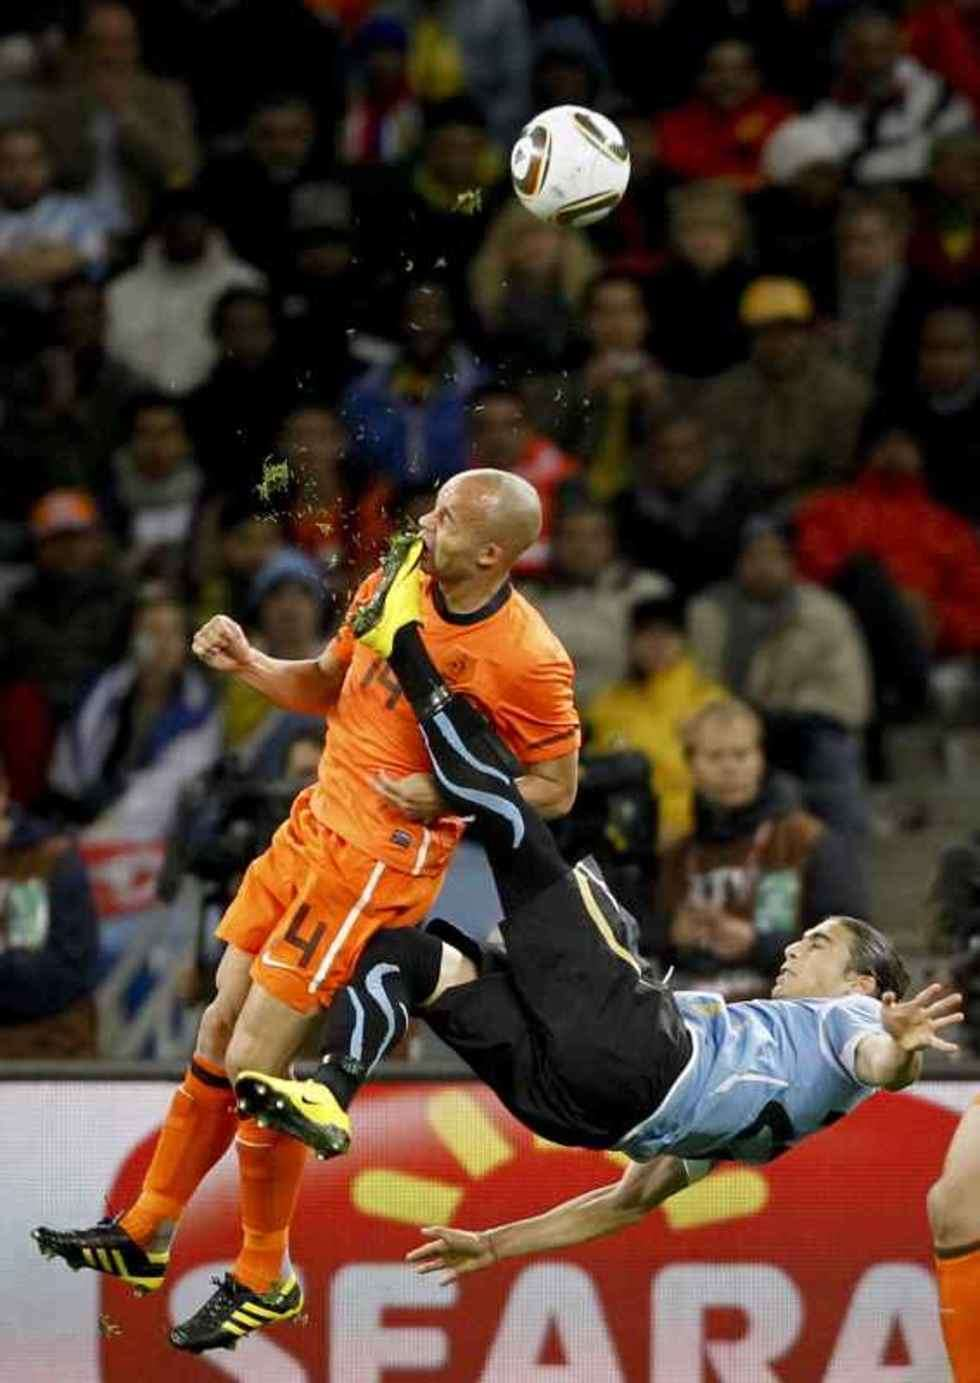 1st Prize Sport Single Netherlands Demy de Zeeuw is kicked in the face by Uruguay's Martin Cáceres during World Cup semi-final, Cape Town, 6 July